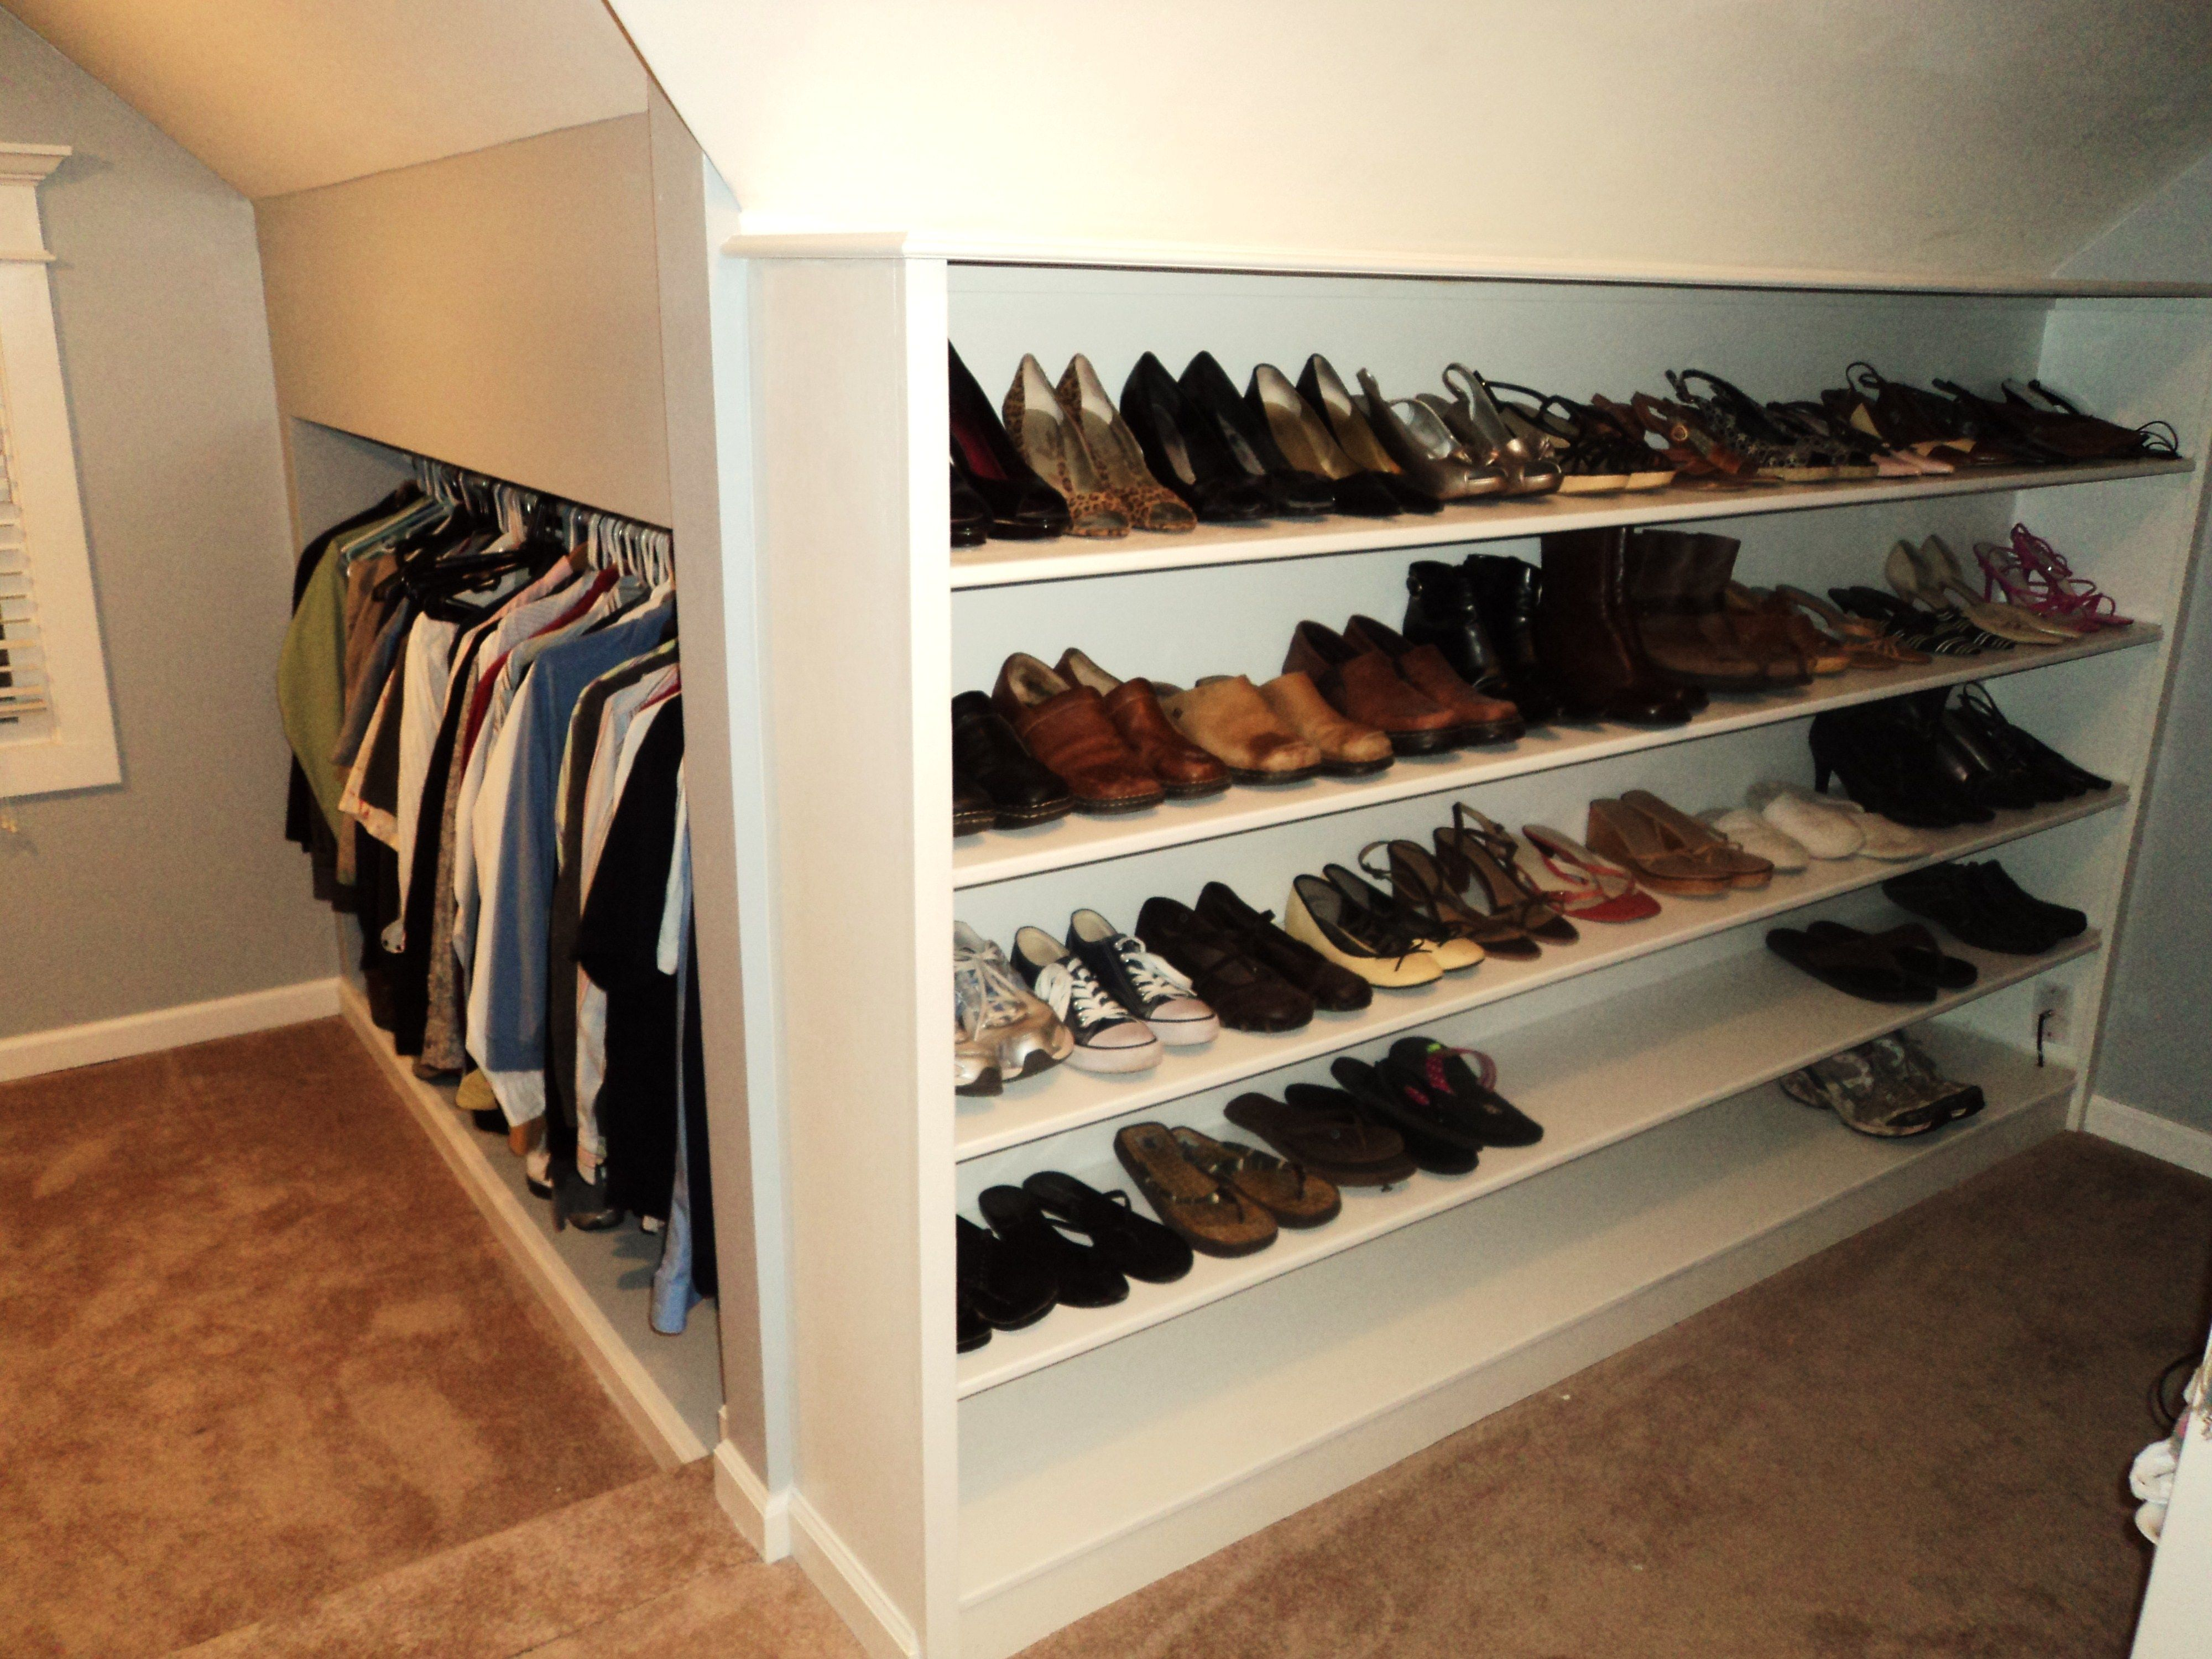 Unused Attic Space Used For More Storage In A Master Closet. (Actual Link: